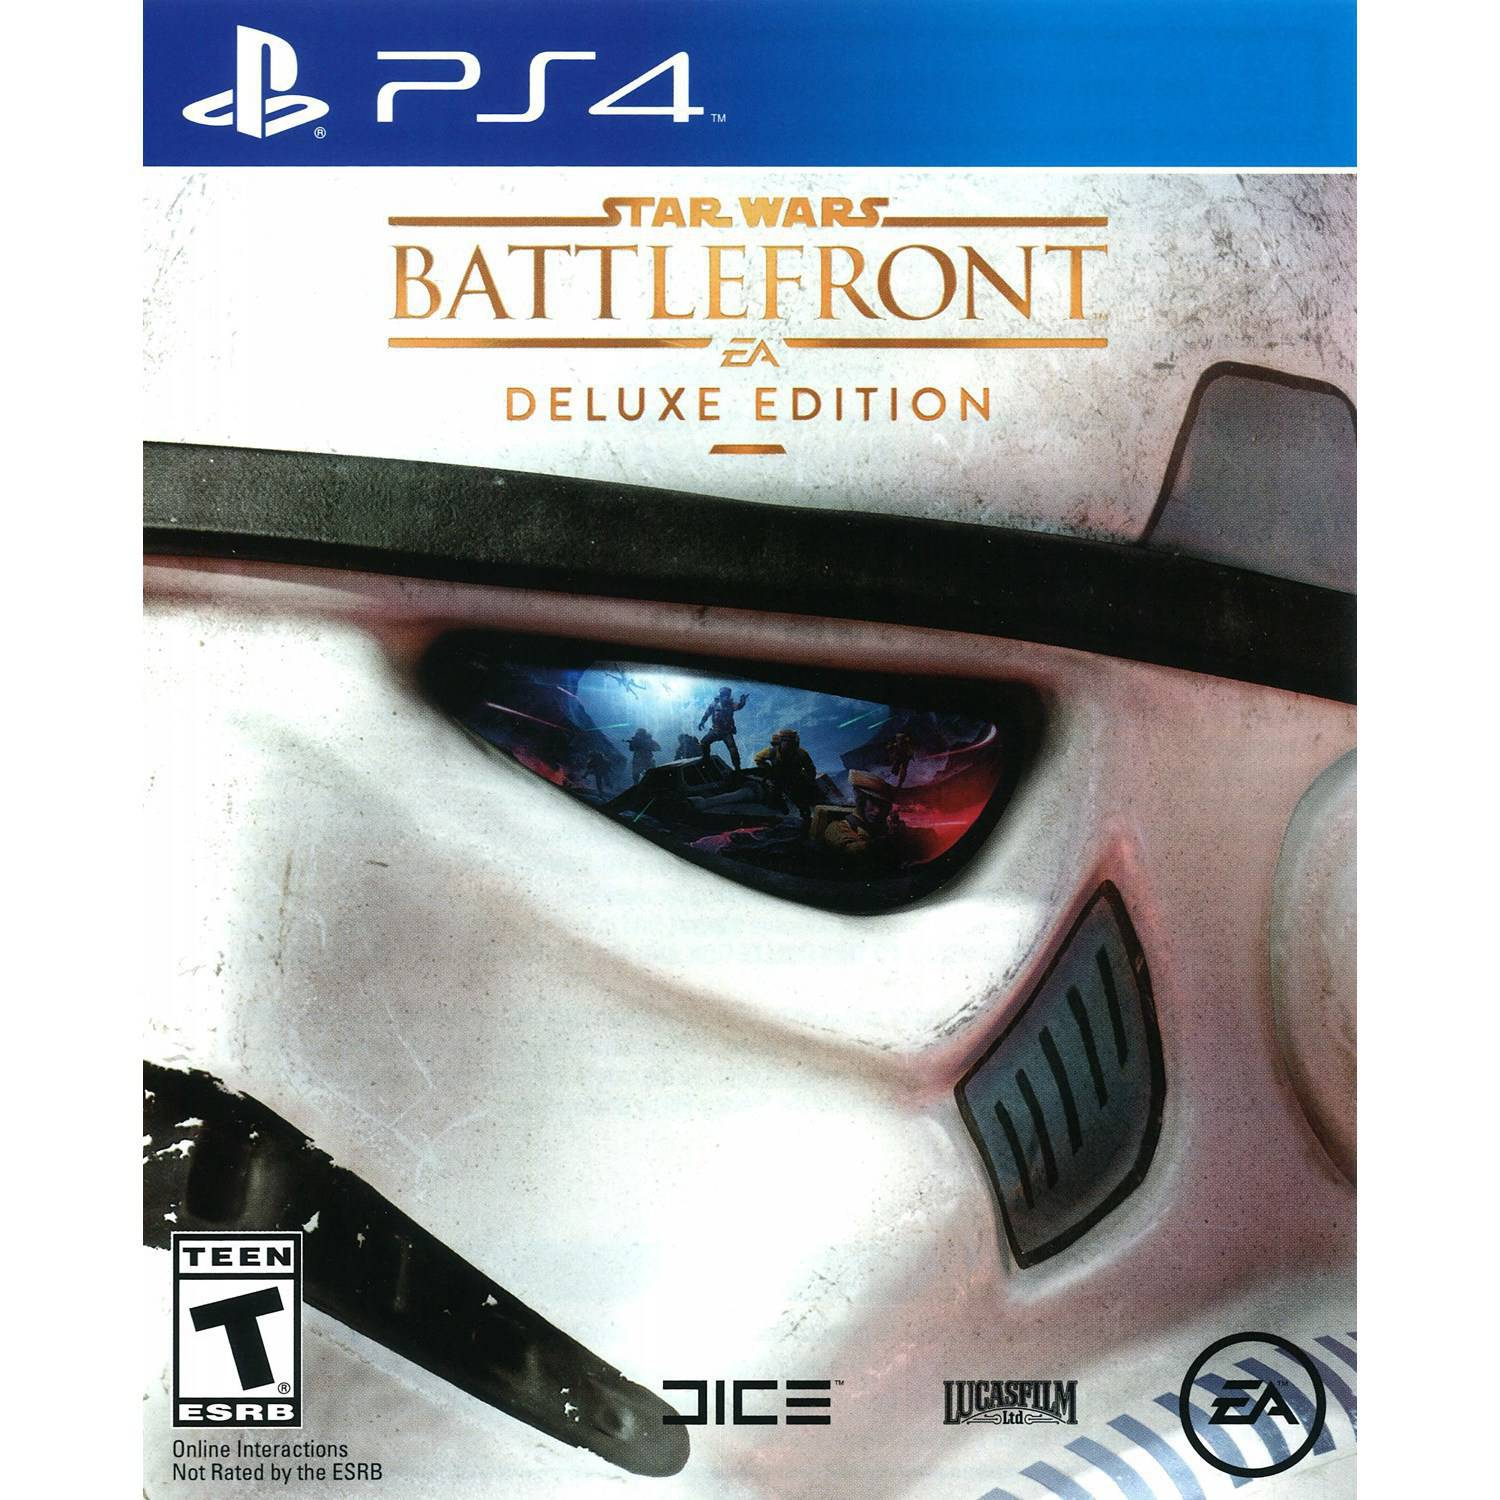 Star Wars Battlefront Deluxe Edition PS4 Walmart